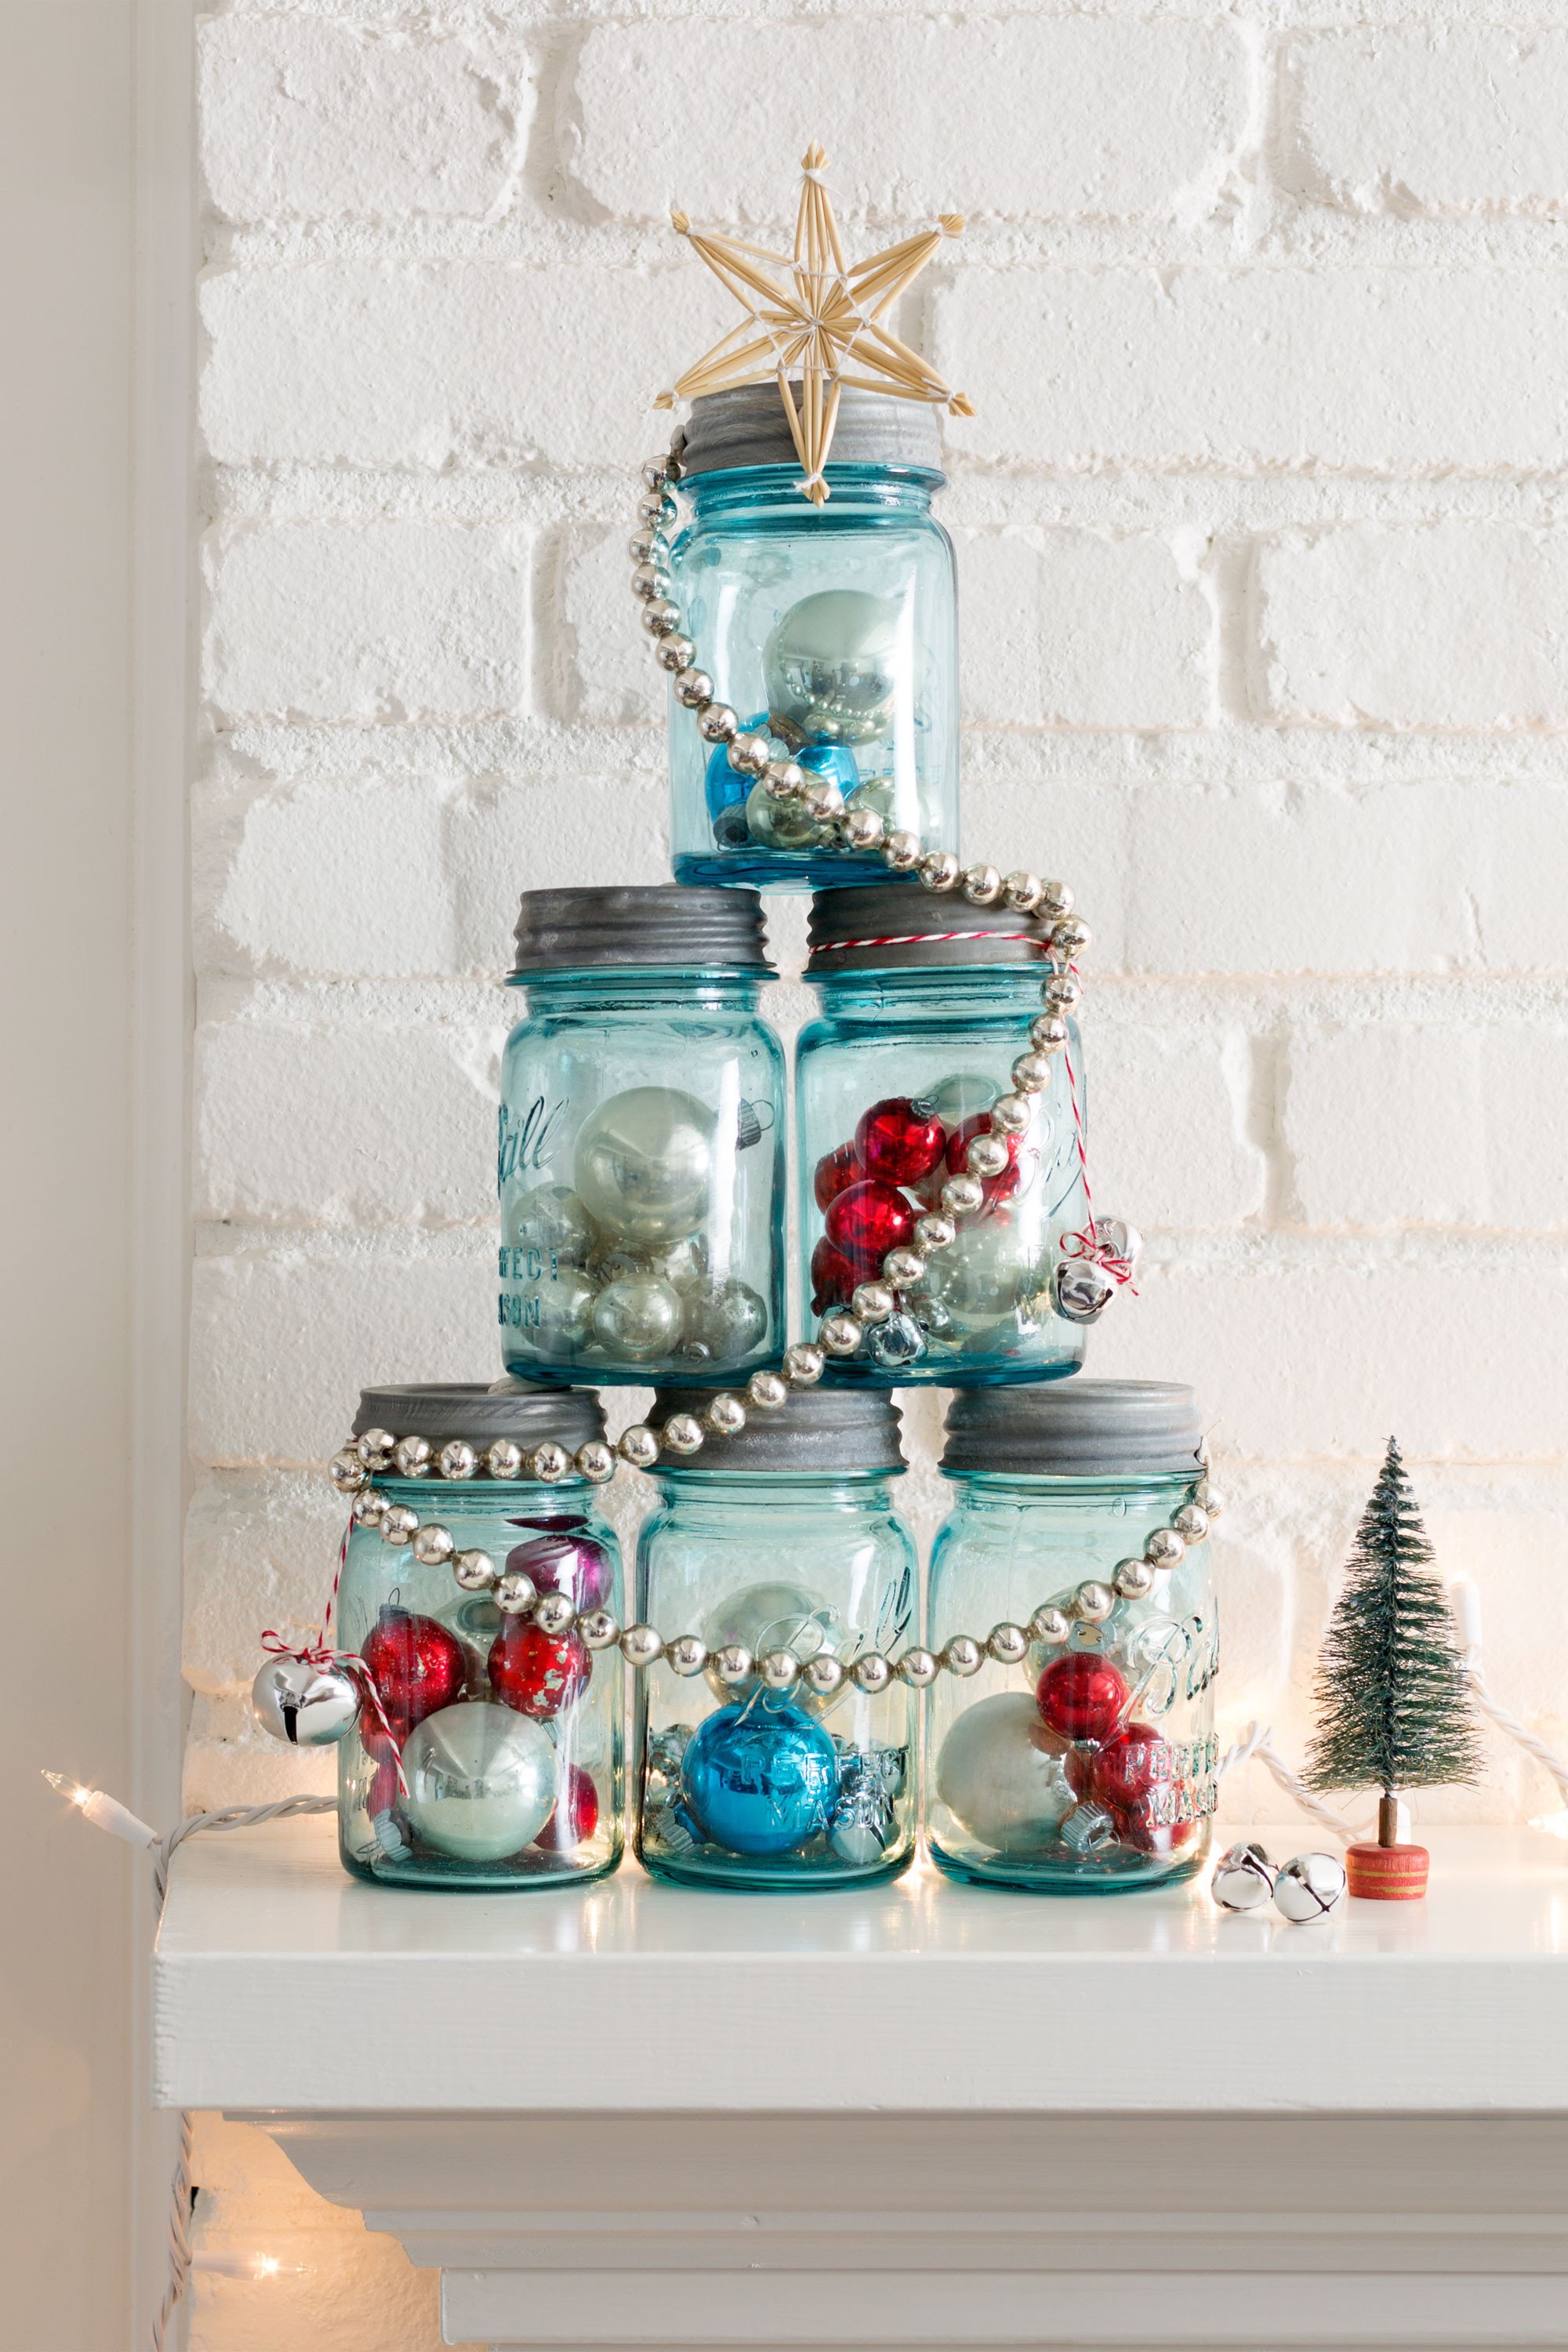 Best ideas about DIY Christmas Decor Ideas . Save or Pin 37 DIY Homemade Christmas Decorations Christmas Decor Now.